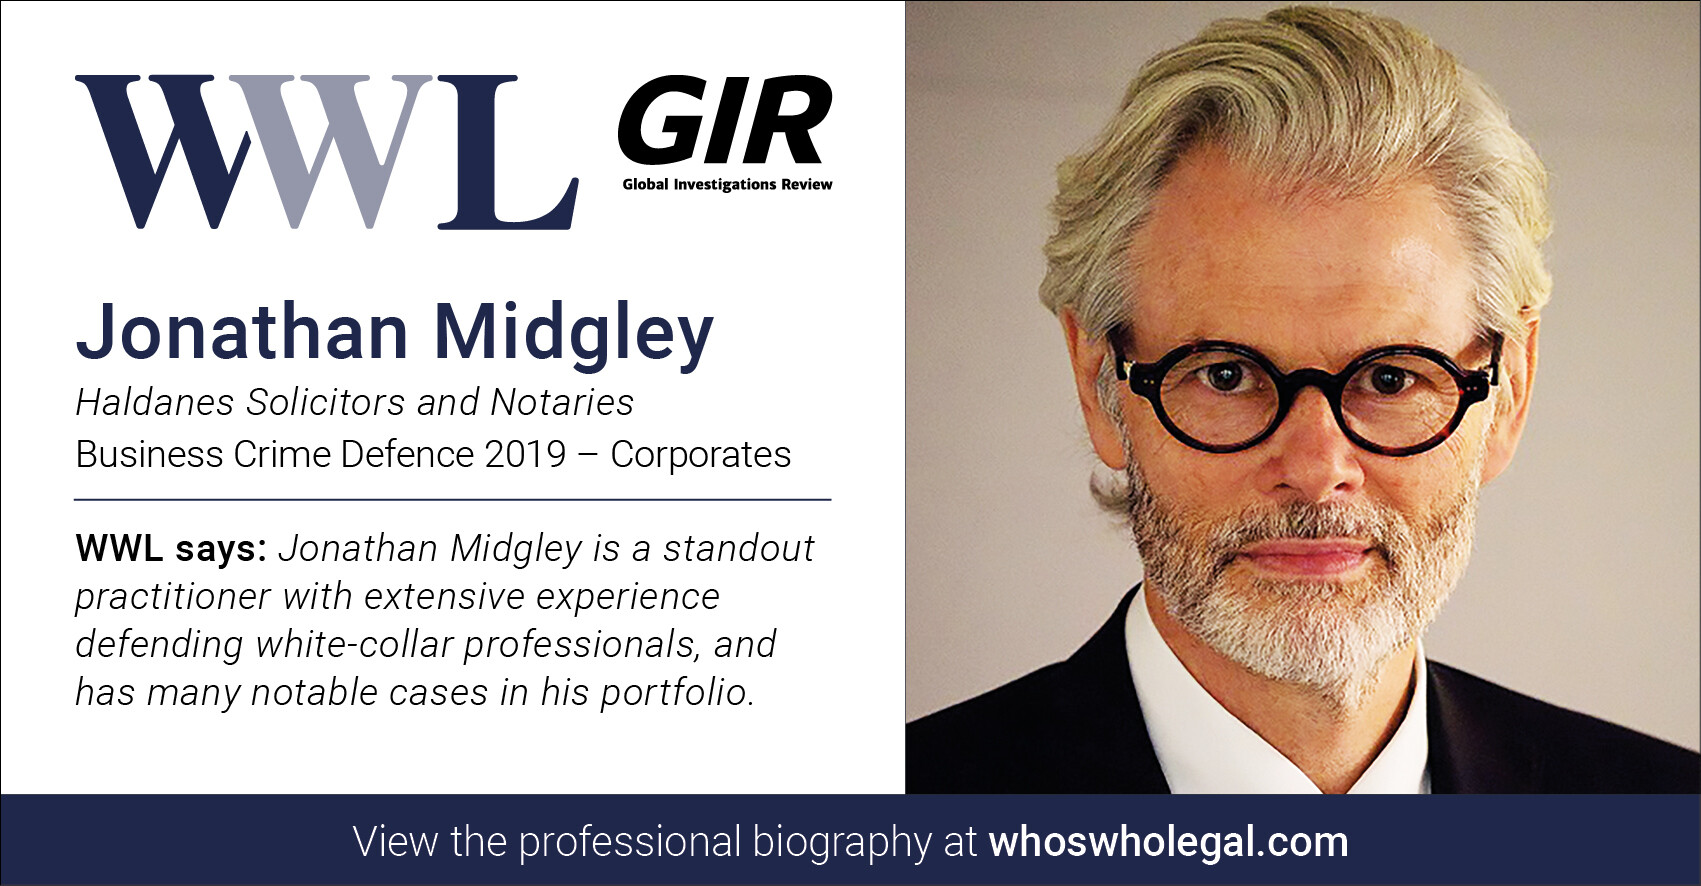 Jonathan Midgley WWL 2019 1 - Haldanes recognised in Who's Who Legal Business Crime Defence 2019